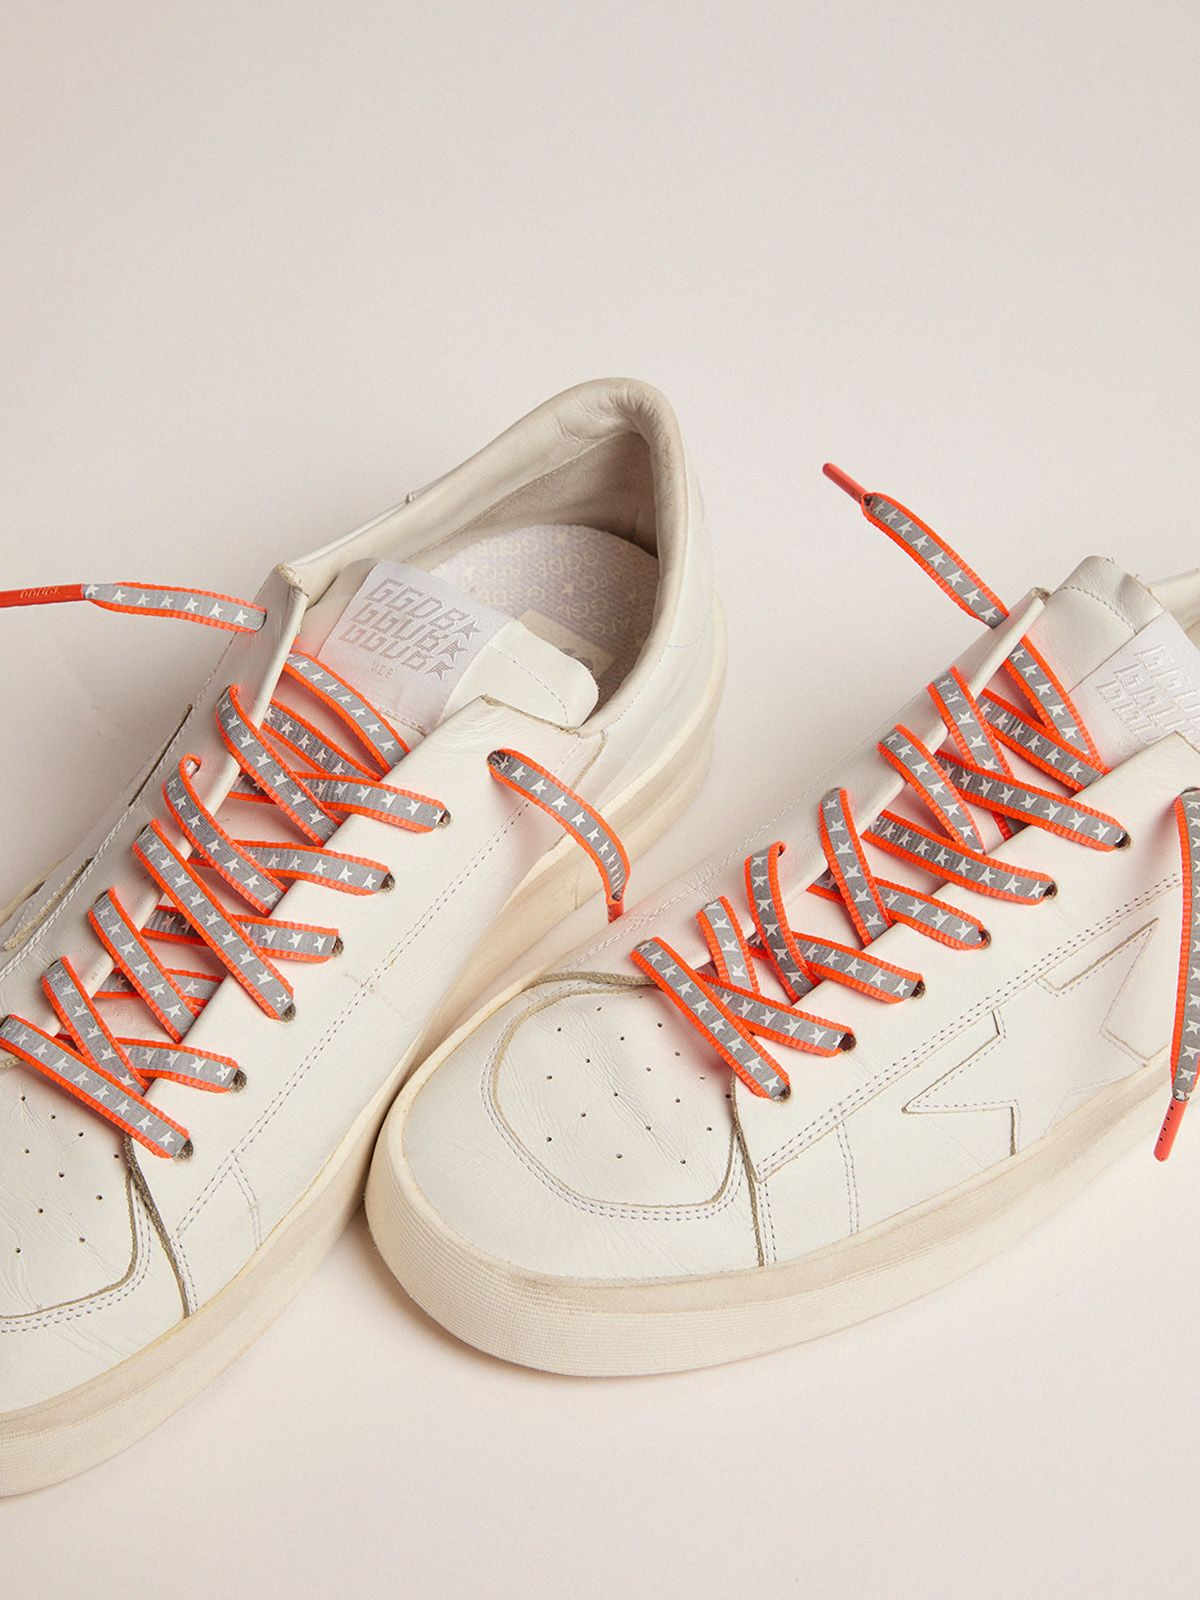 Golden Goose - Men's neon orange reflective laces with stars in